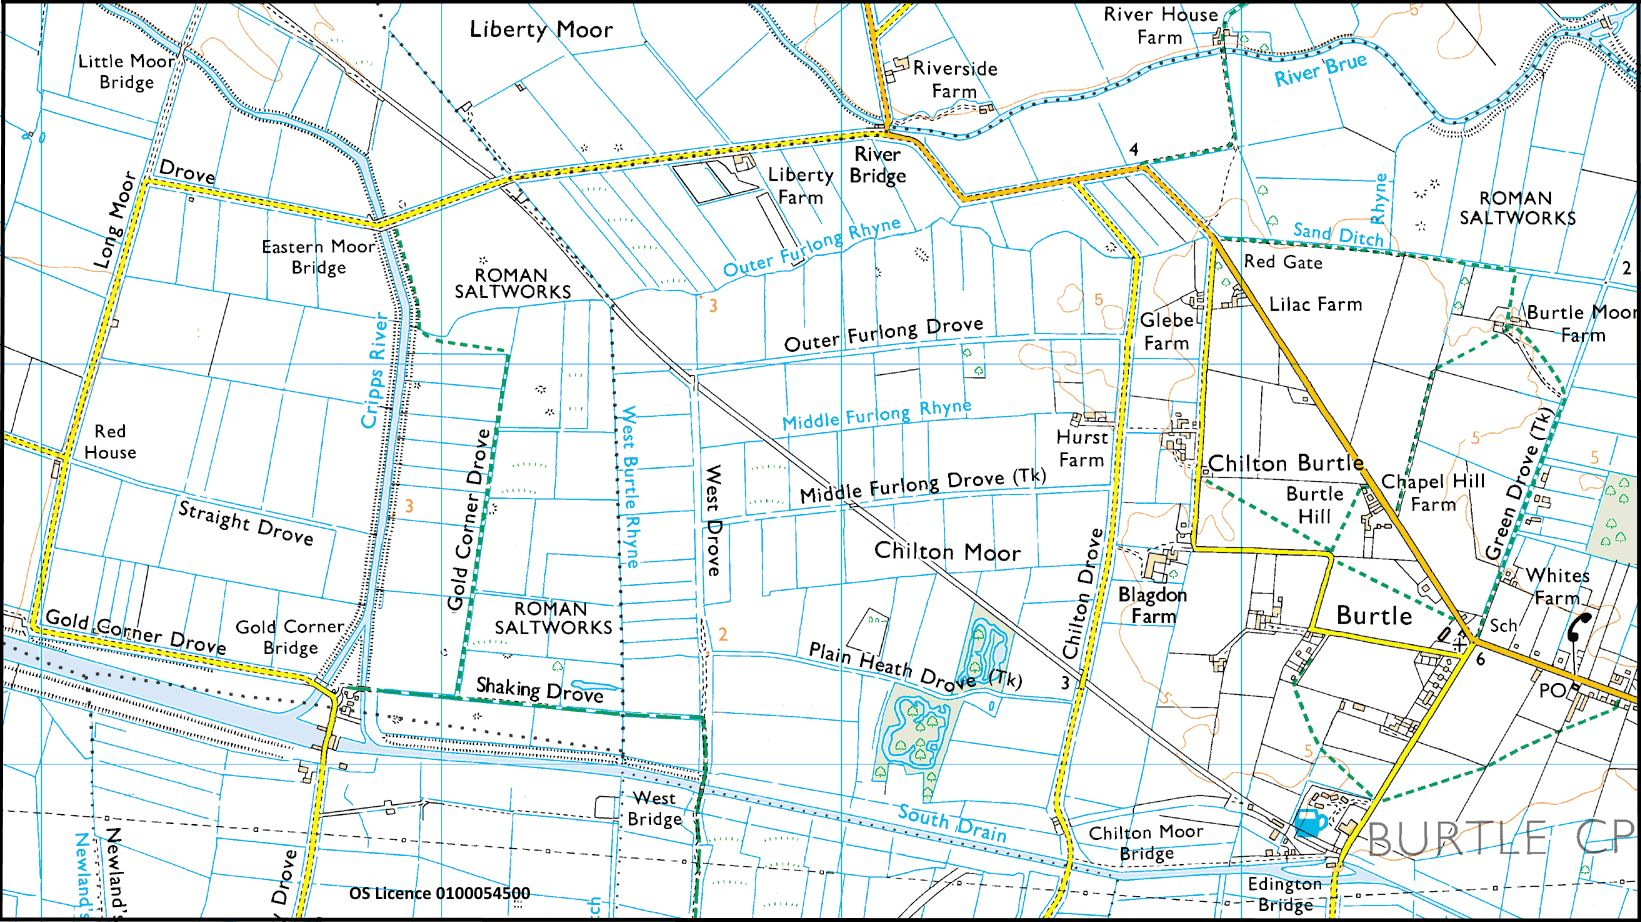 OS Map of Gold Corner and Burtle area